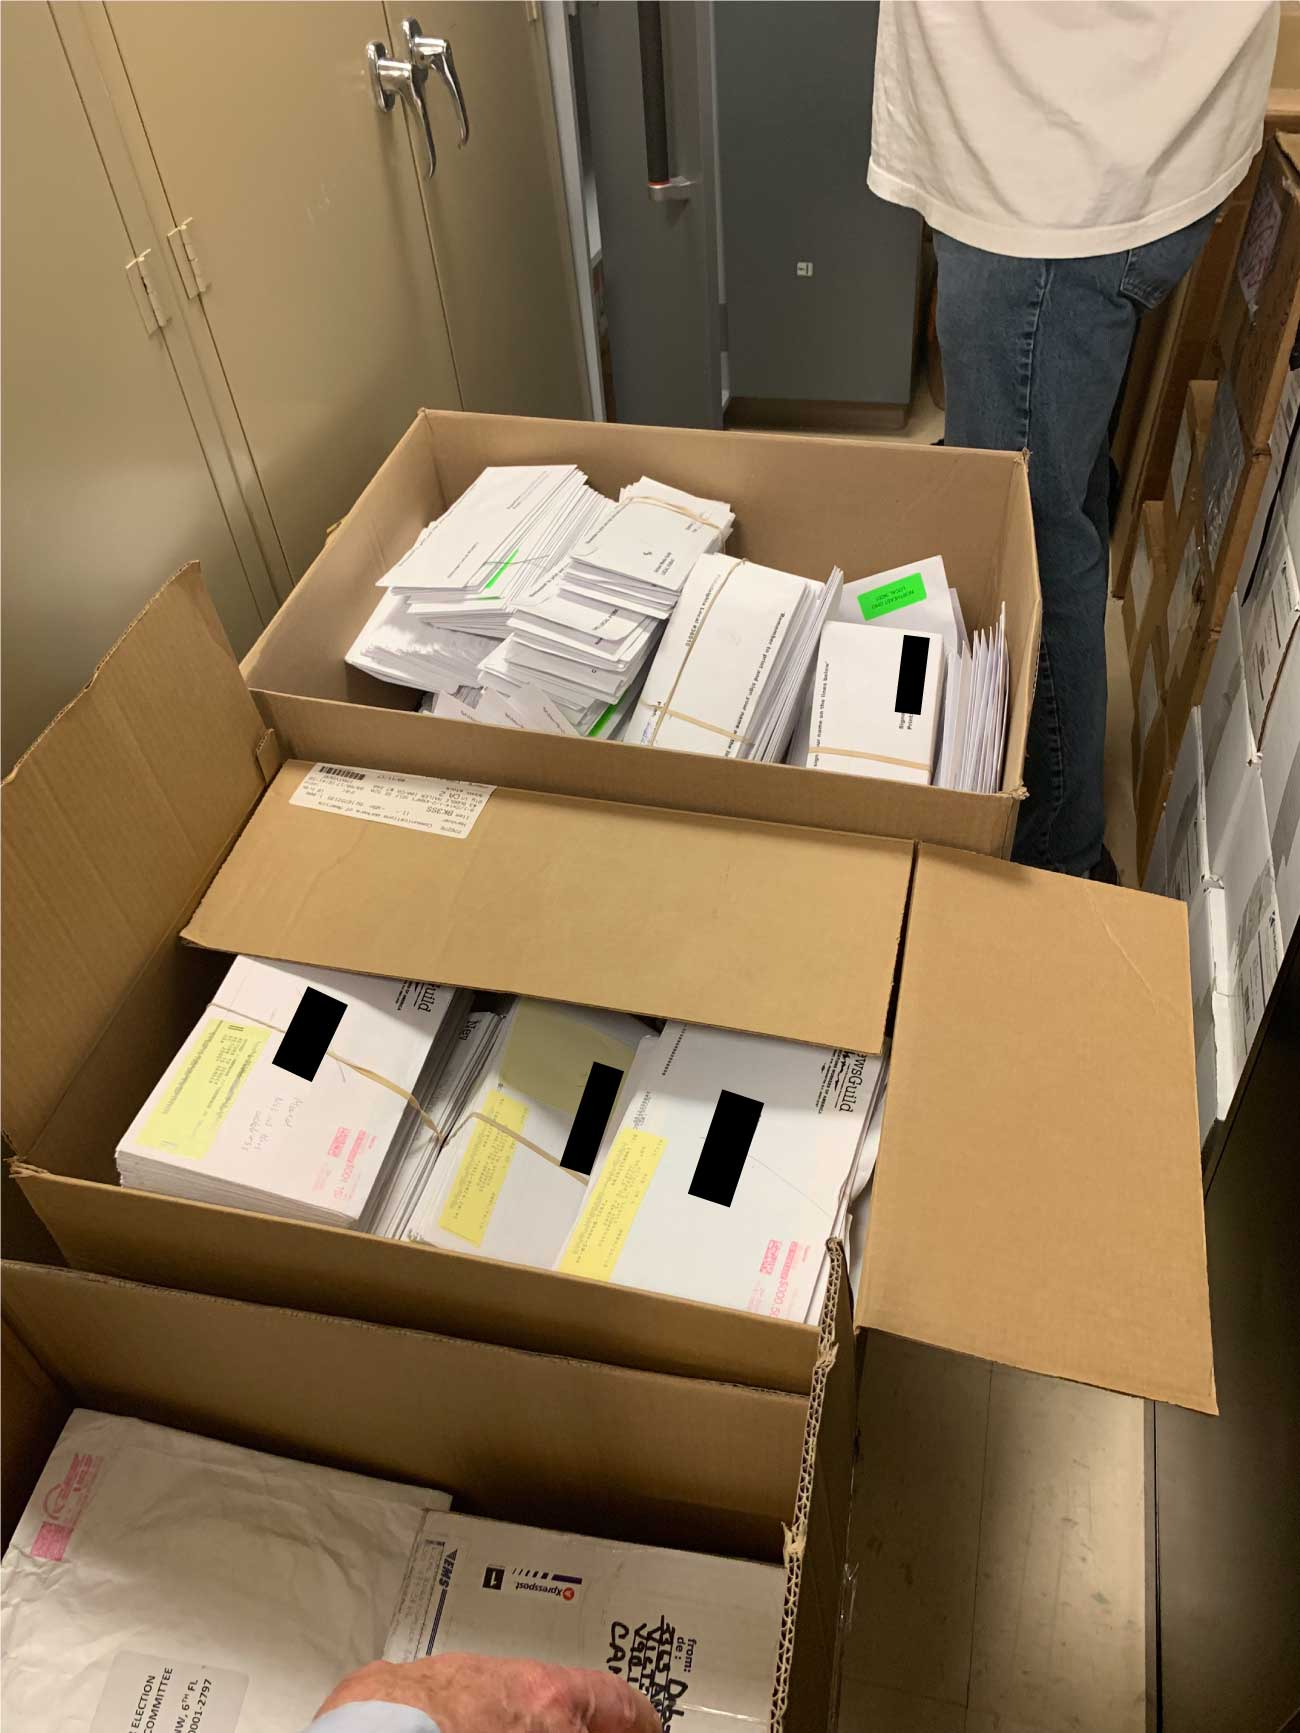 Last week I discovered that NewsGuild HQ had received more than 1,000 ballots (box below) that never made it to dues-paying members because of bad addresses. More than 2,000 ballots came back through the mail completed (box above). Member names are redacted for privacy.